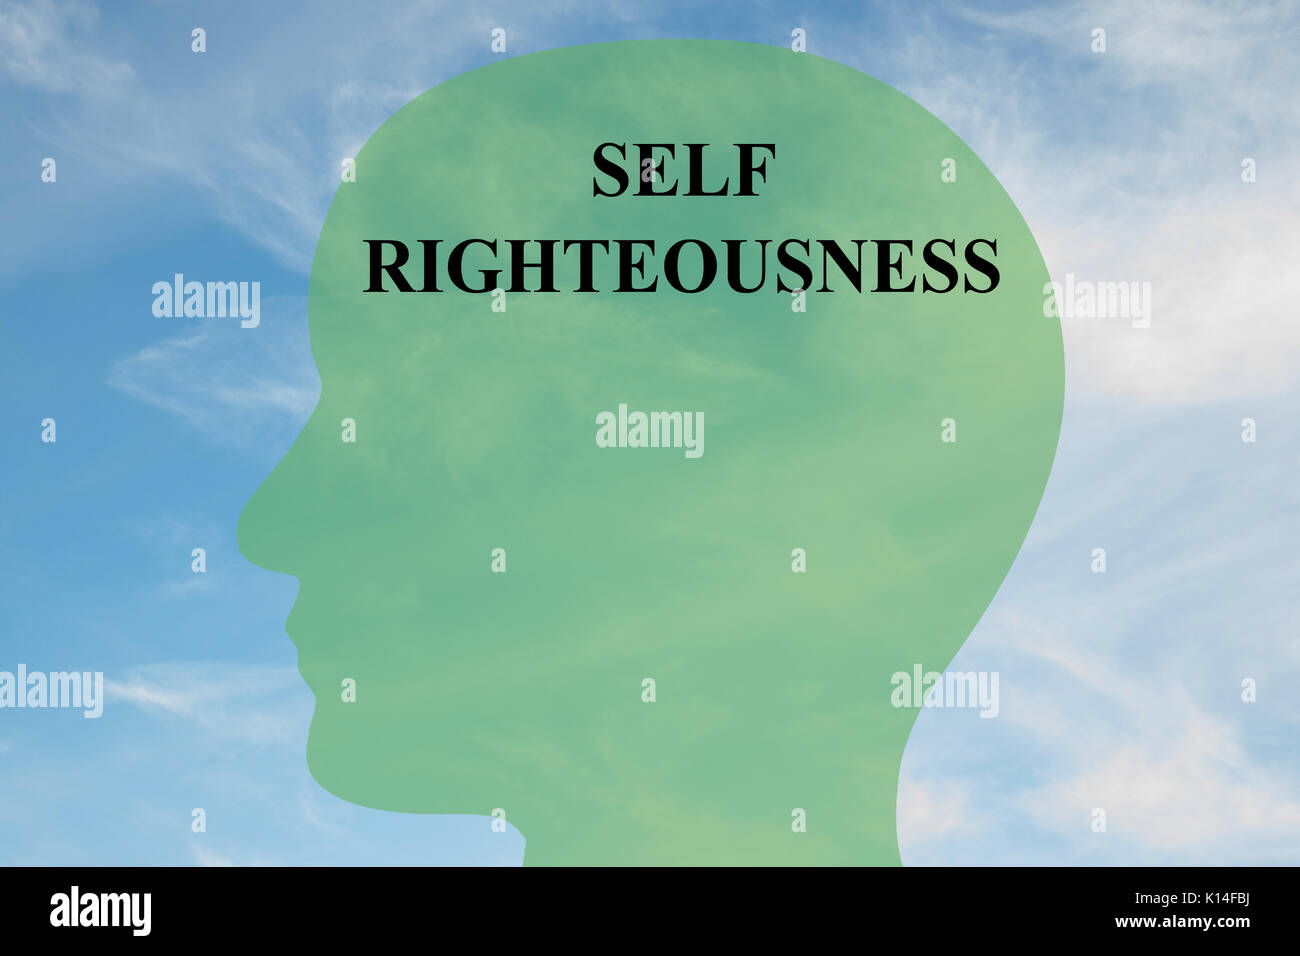 Render illustration of 'SELF RIGHTEOUSNESS' script on head silhouette, with cloudy sky as a background. - Stock Image